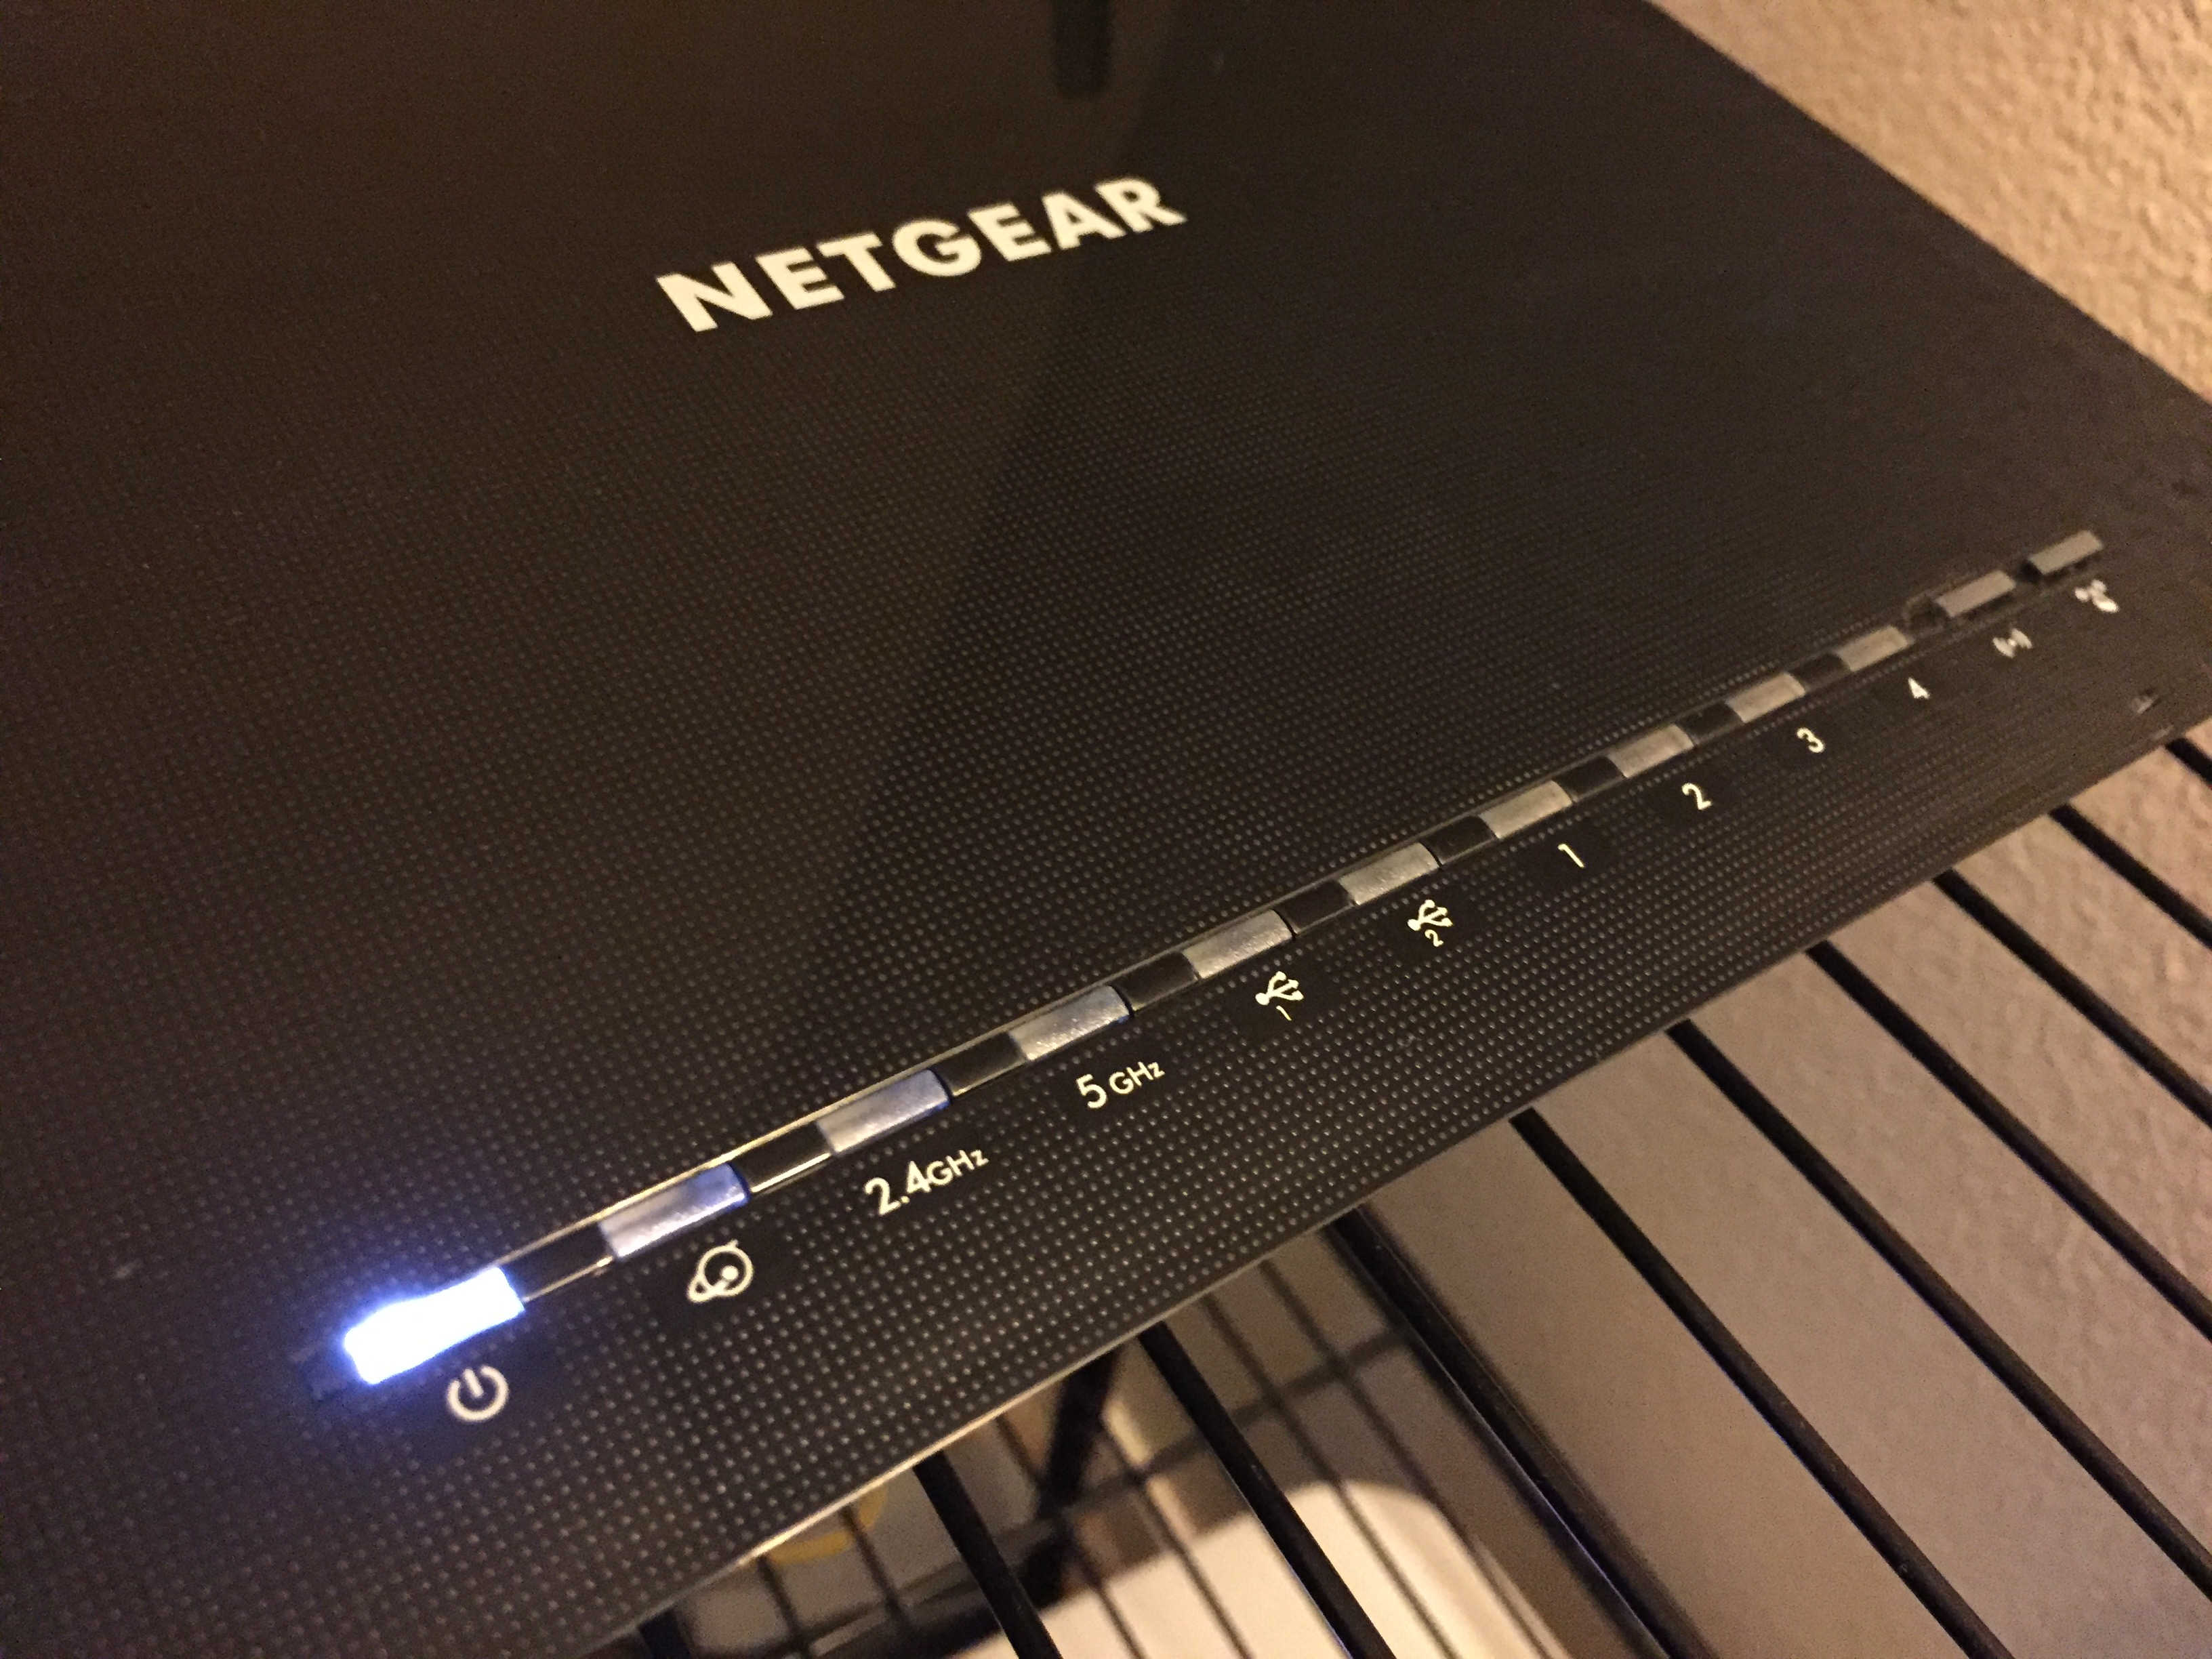 Review: NETGEAR AC1750 Smart Wi-Fi Router bathes your entire